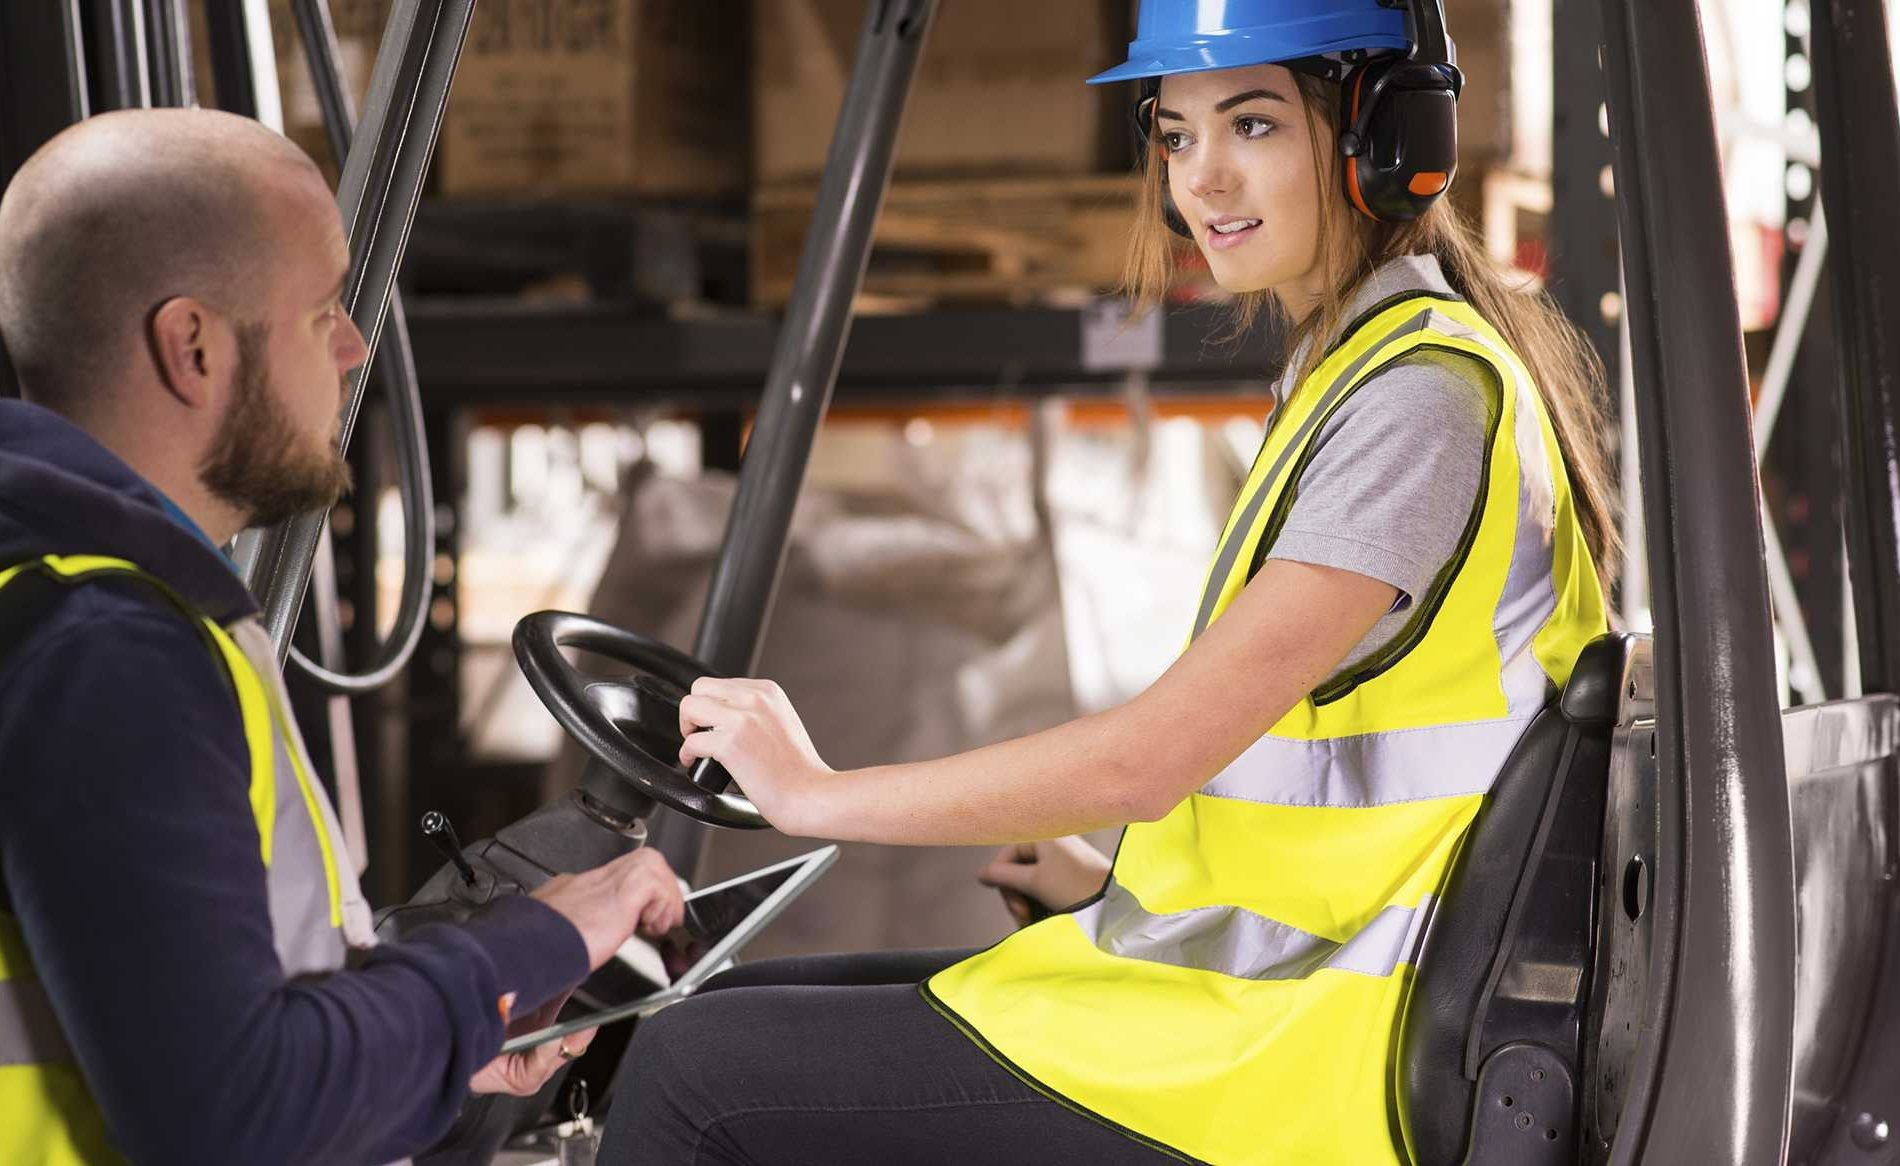 As per osha guidelines all forklift operators are